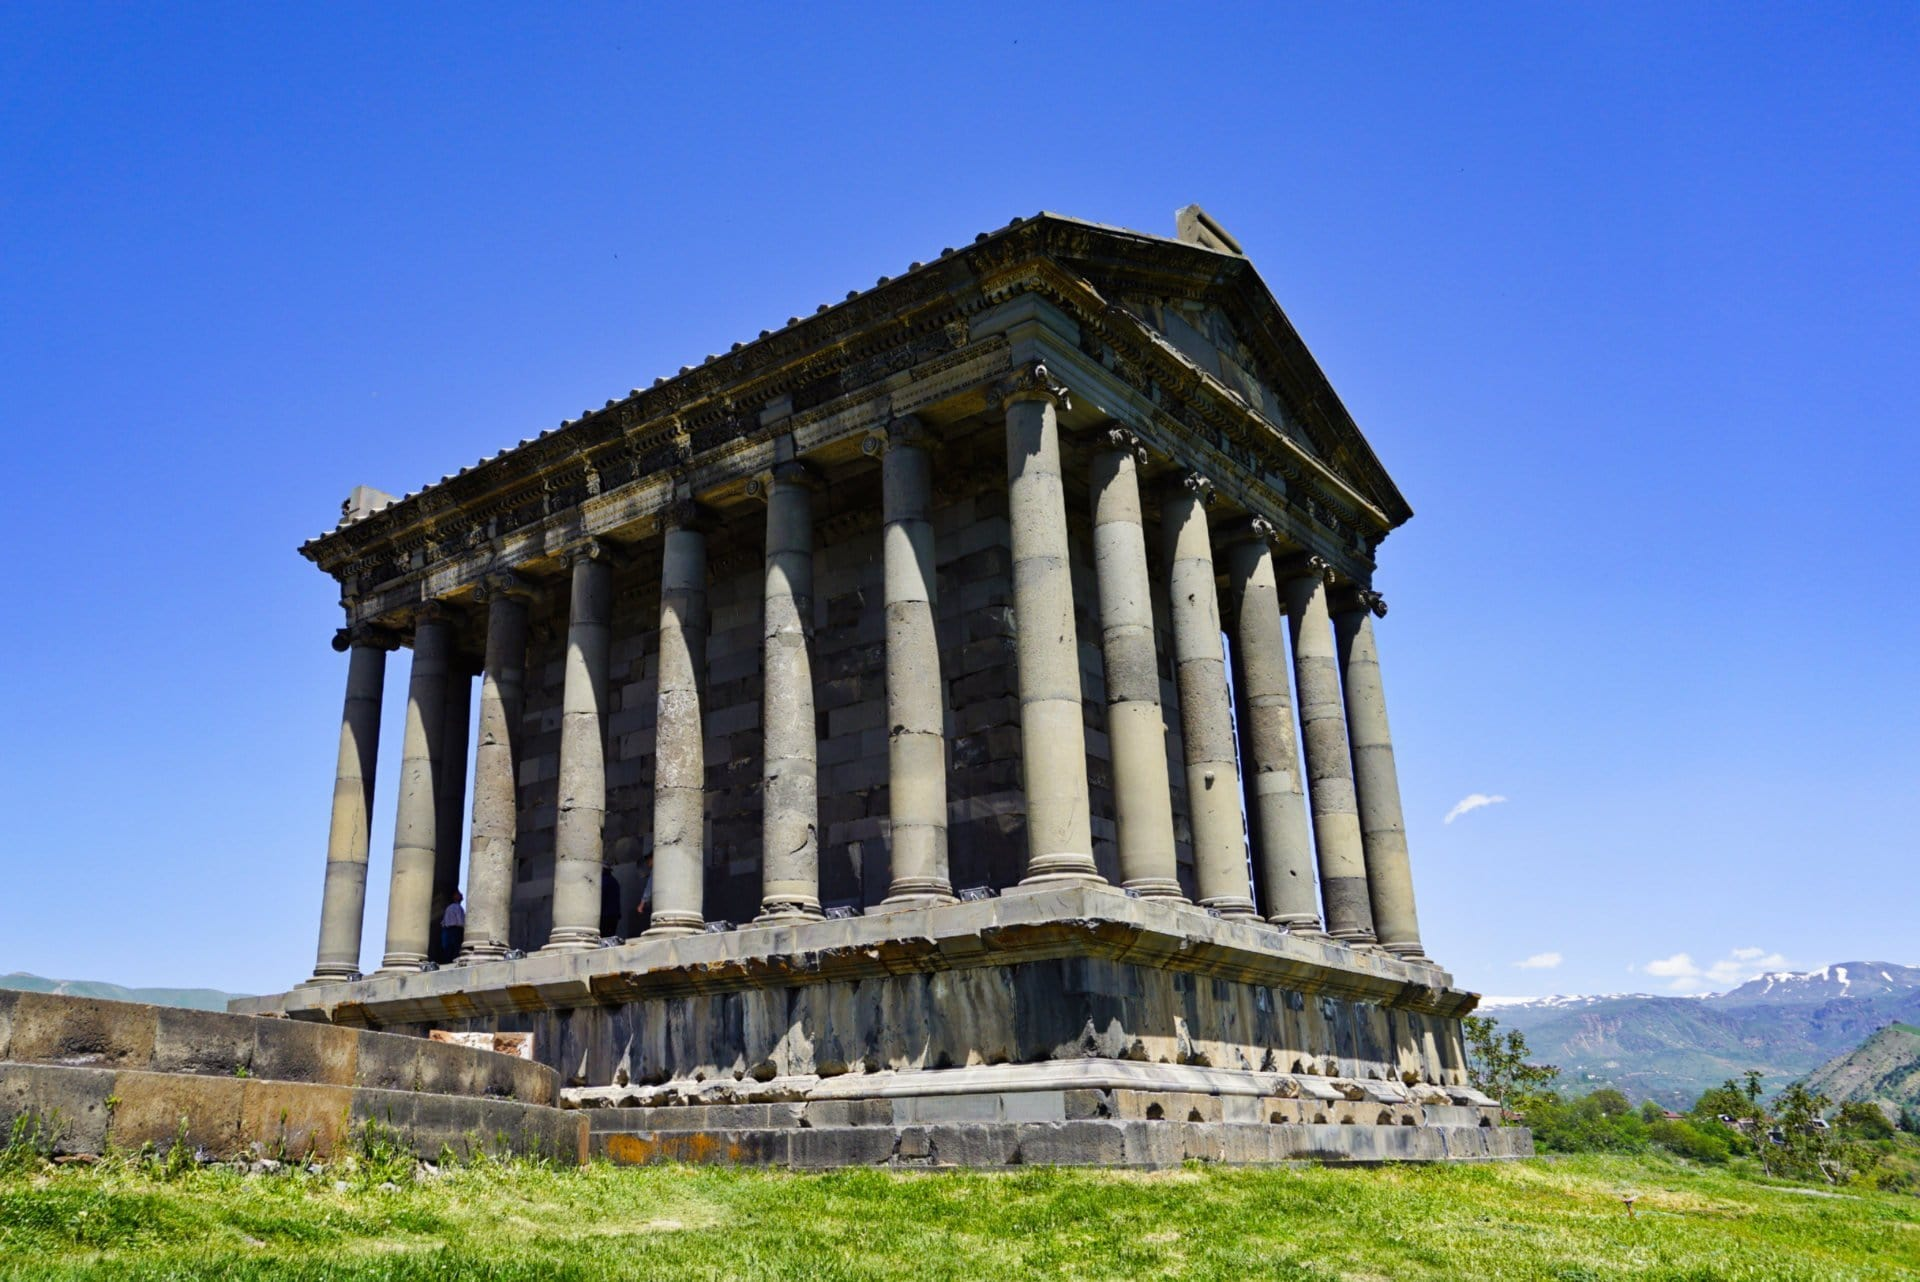 Garni temple, Armenia - Experiencing the Globe